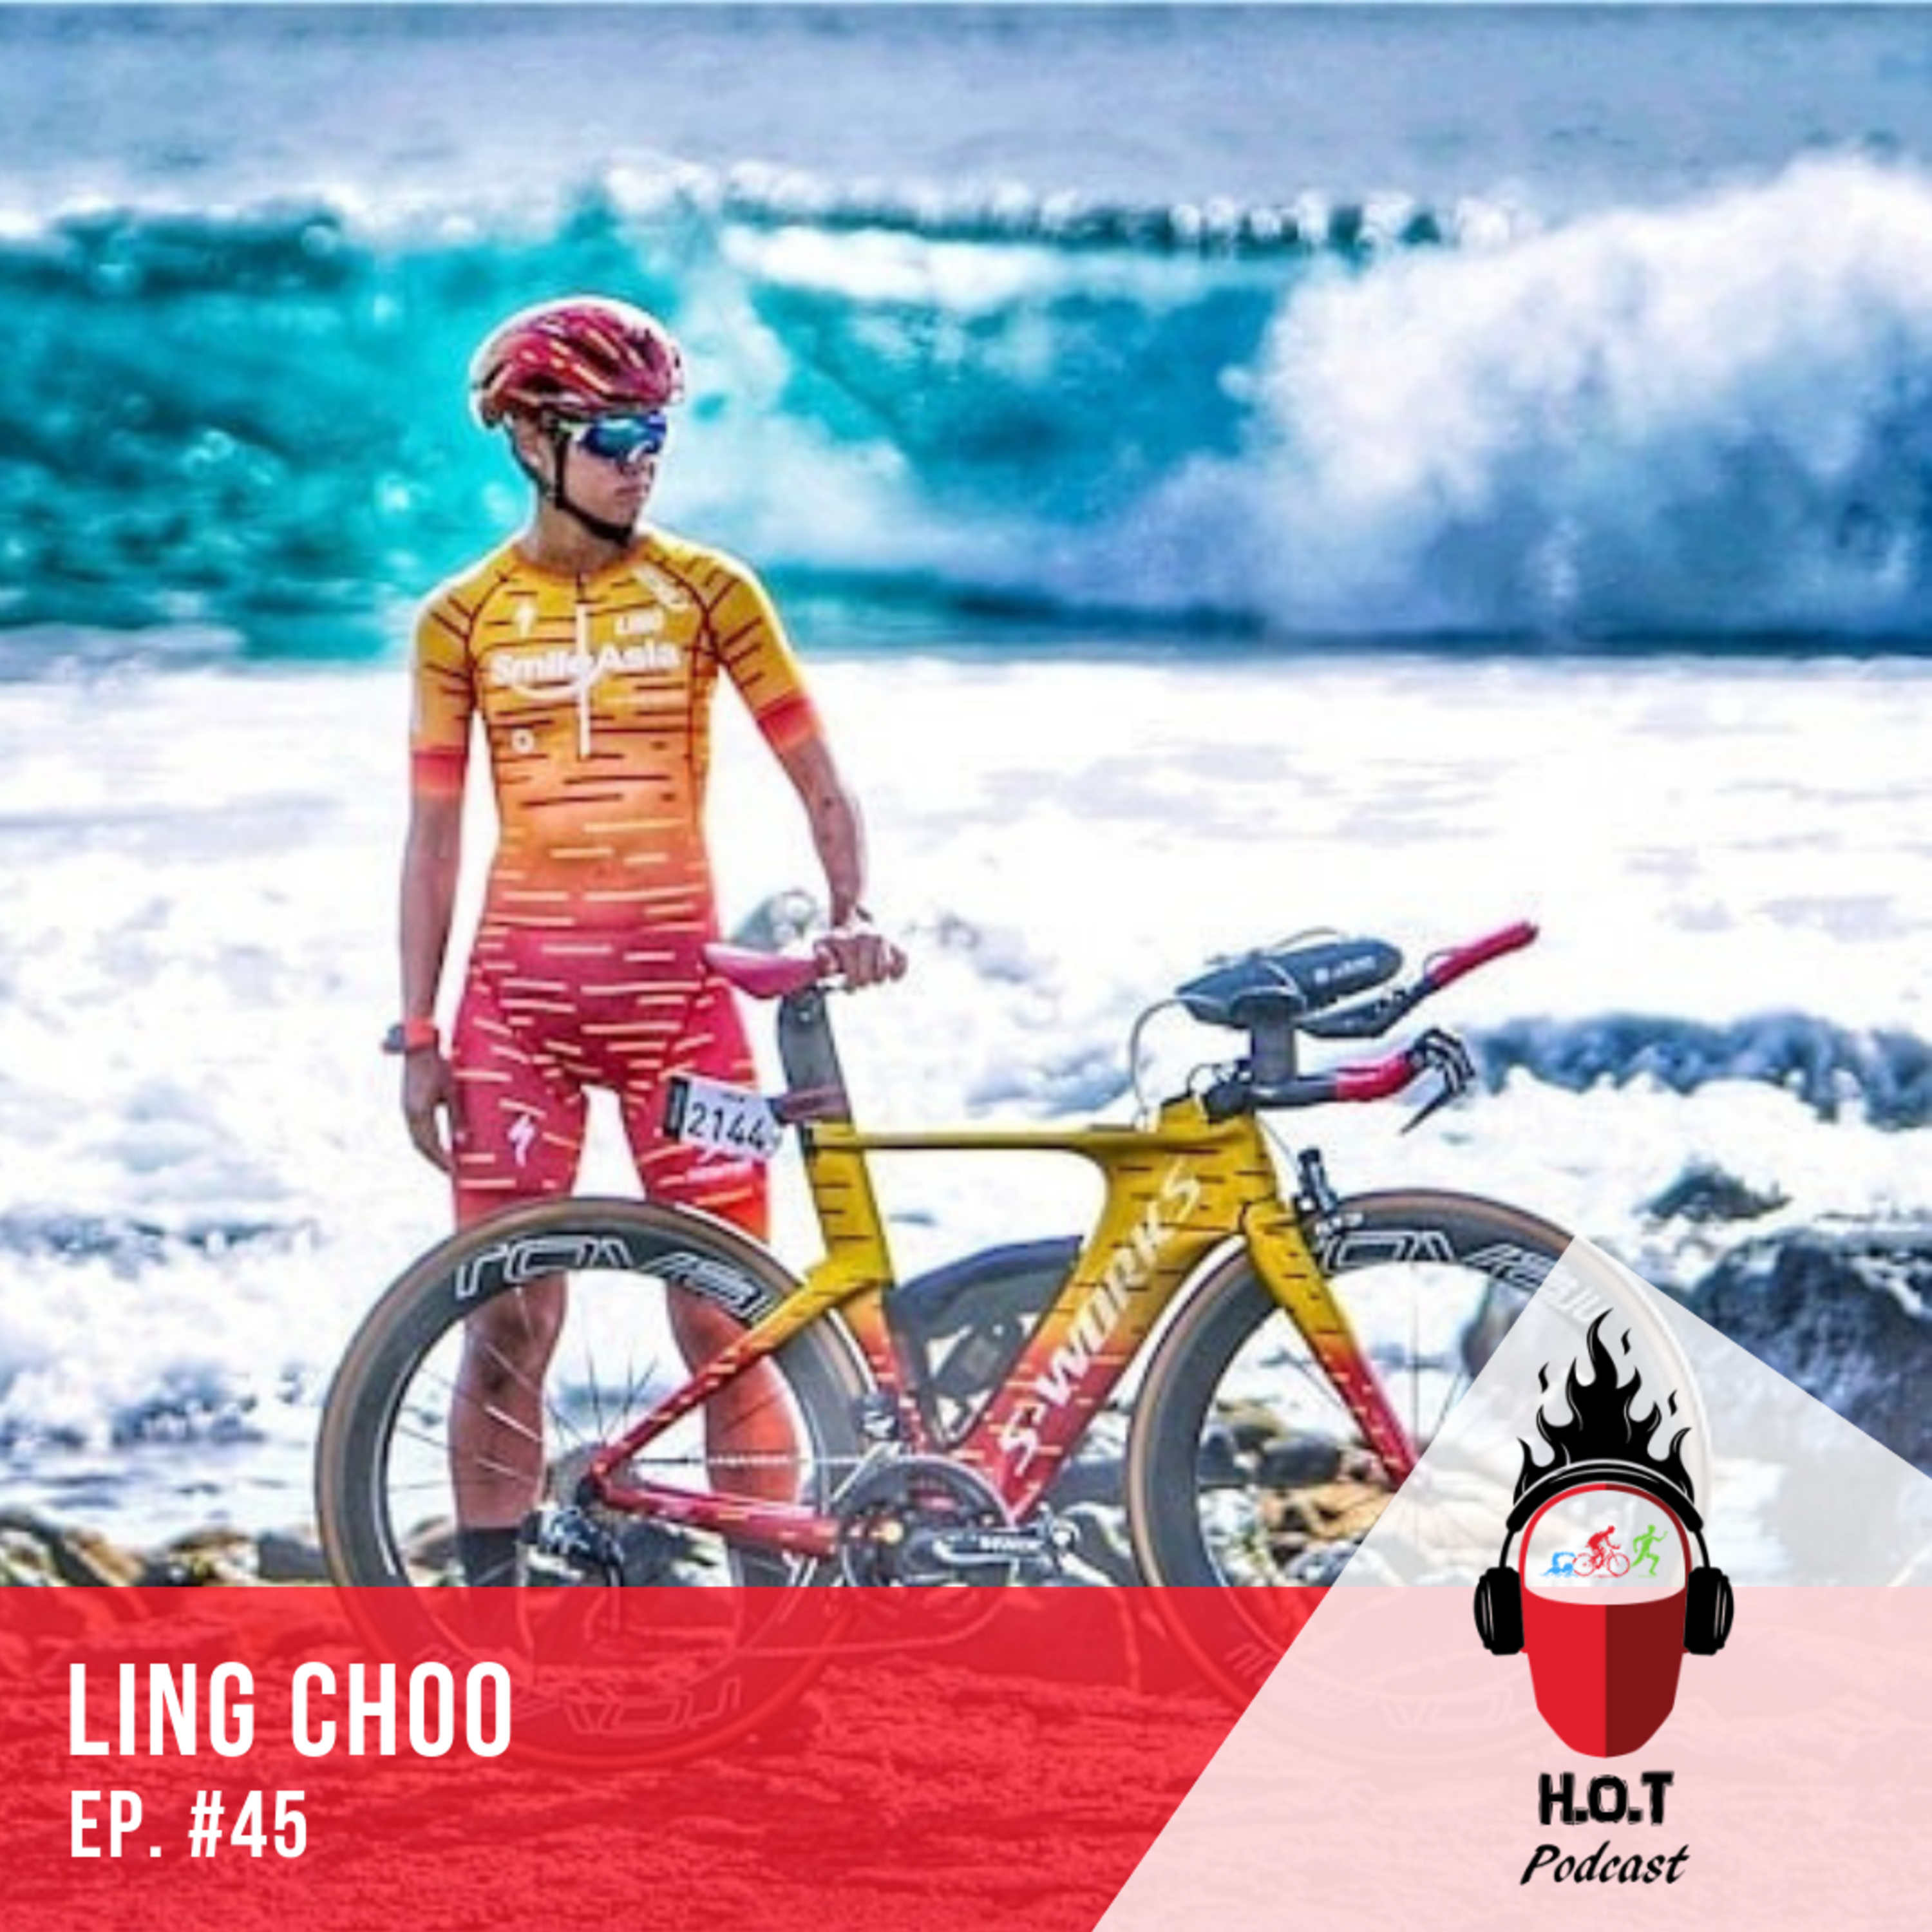 Ep. #45: Ling Choo | Full-time Triathlete from Singapore and National IM Record Holder